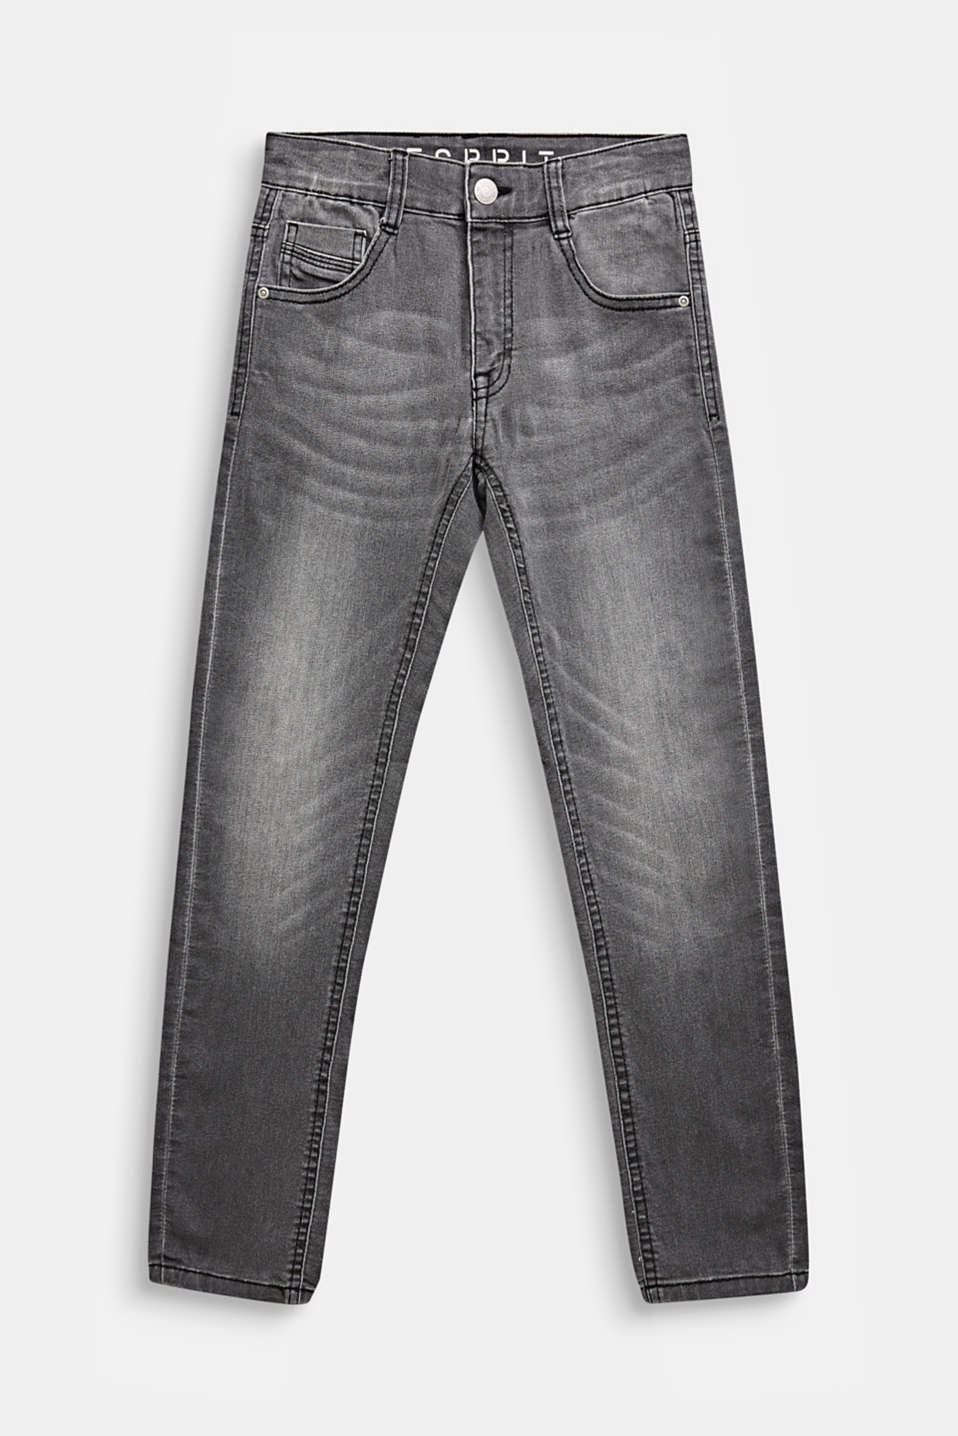 Esprit - Graue Superstretch-Jeans